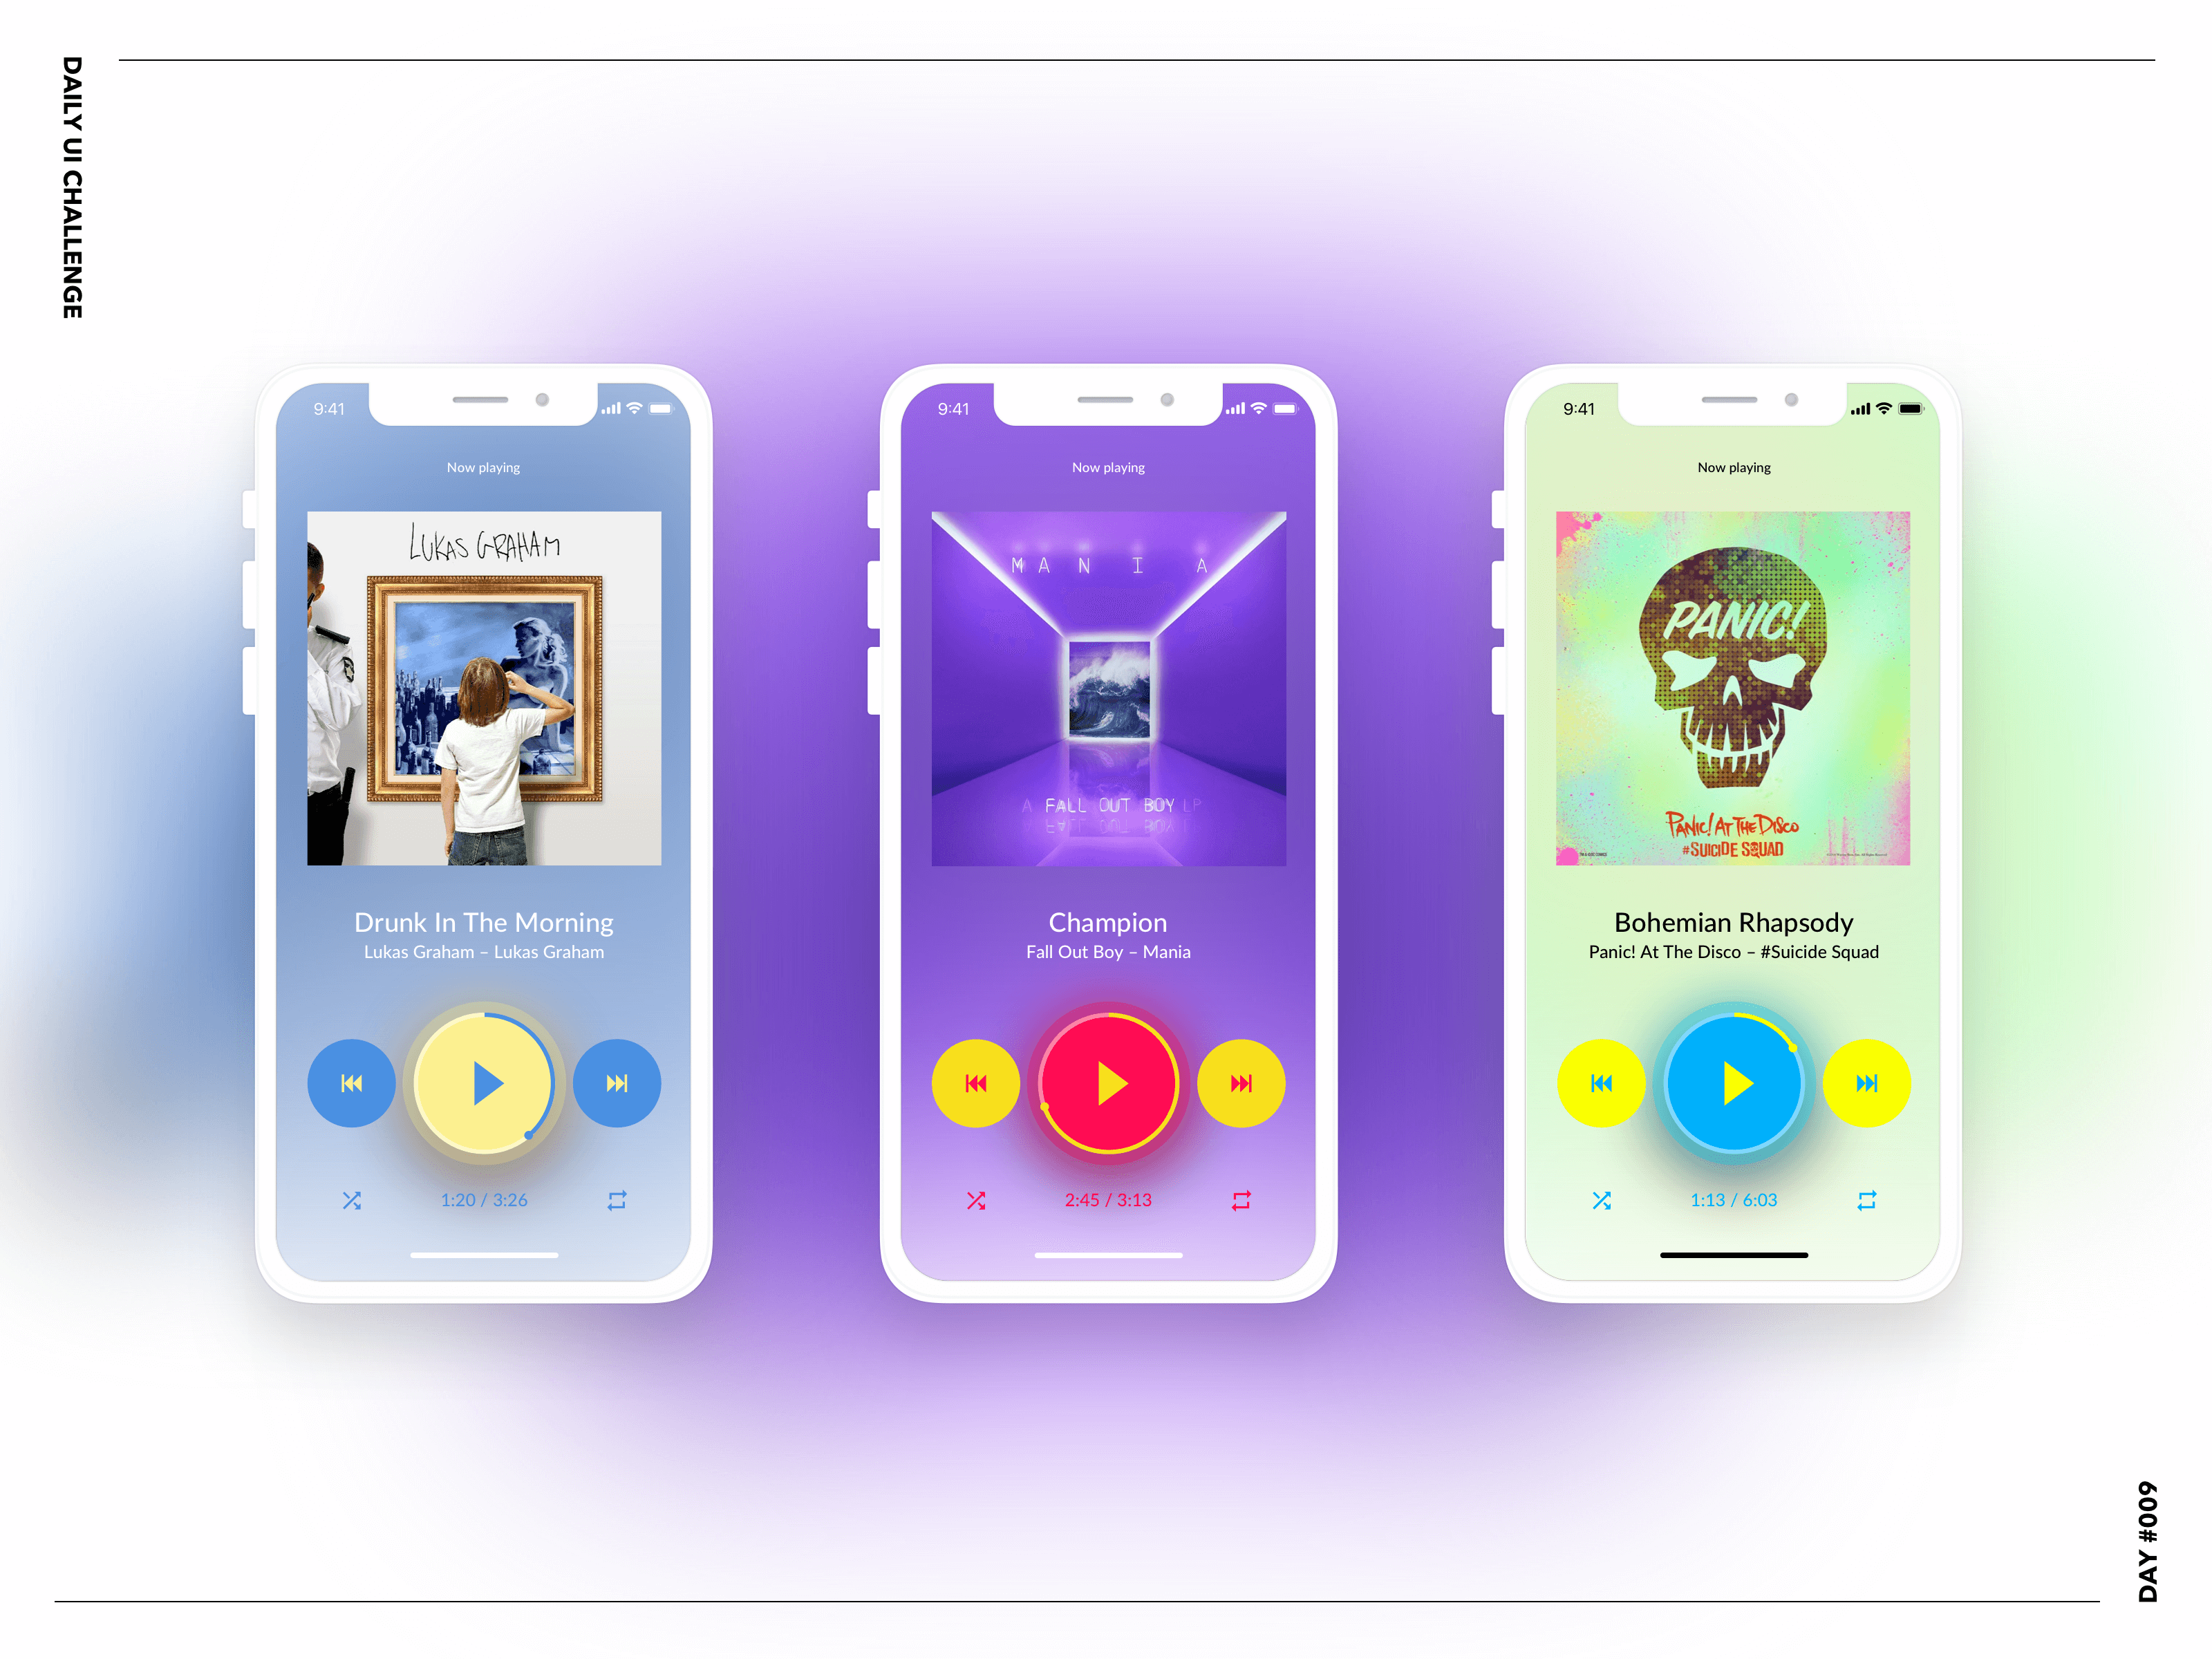 009-DUIC-Music-Player-Dribbble